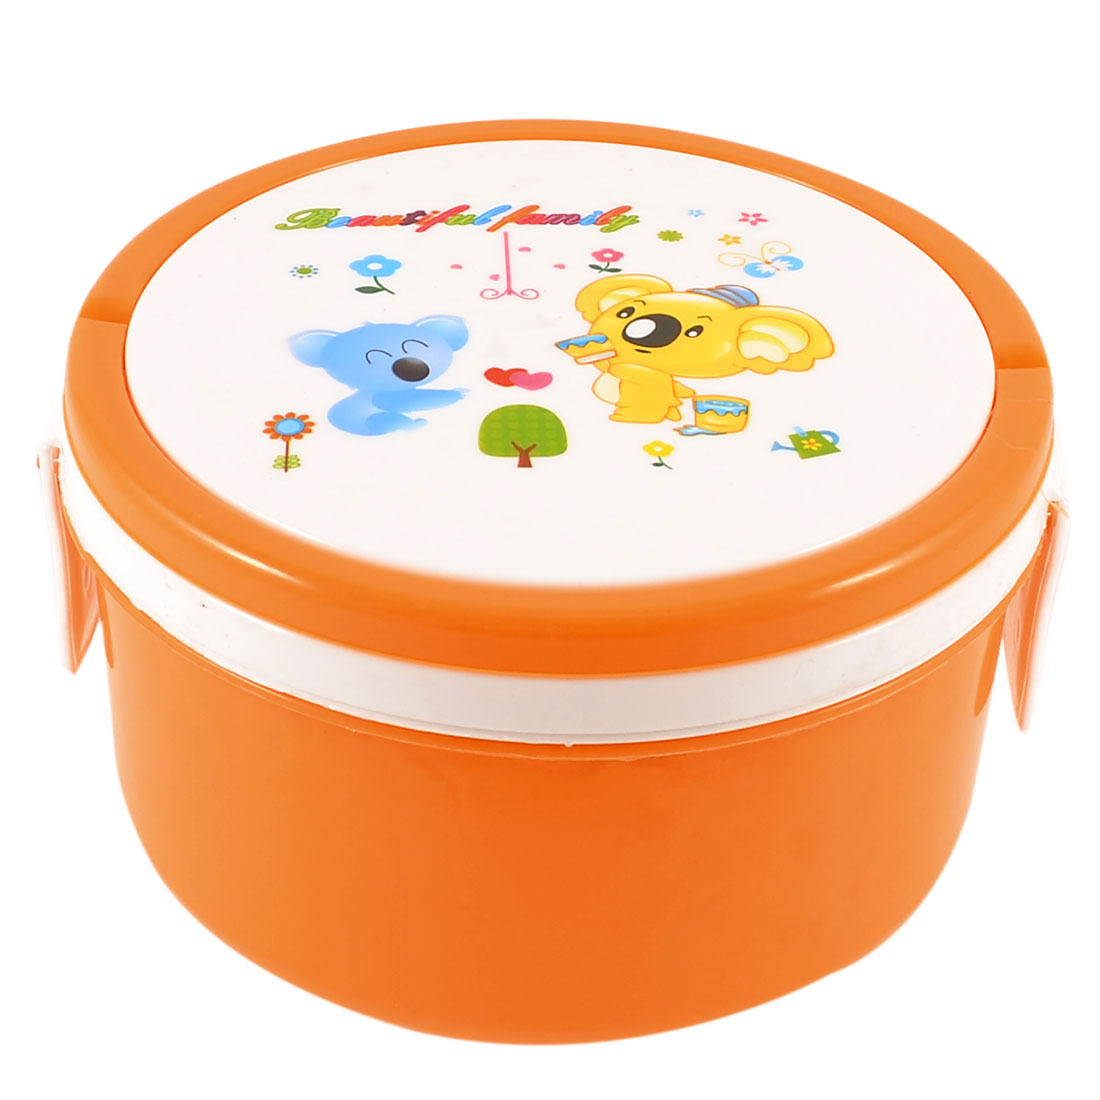 Students Cartoon Animal Printed Detachable Lid Lunch Box Case Orange White